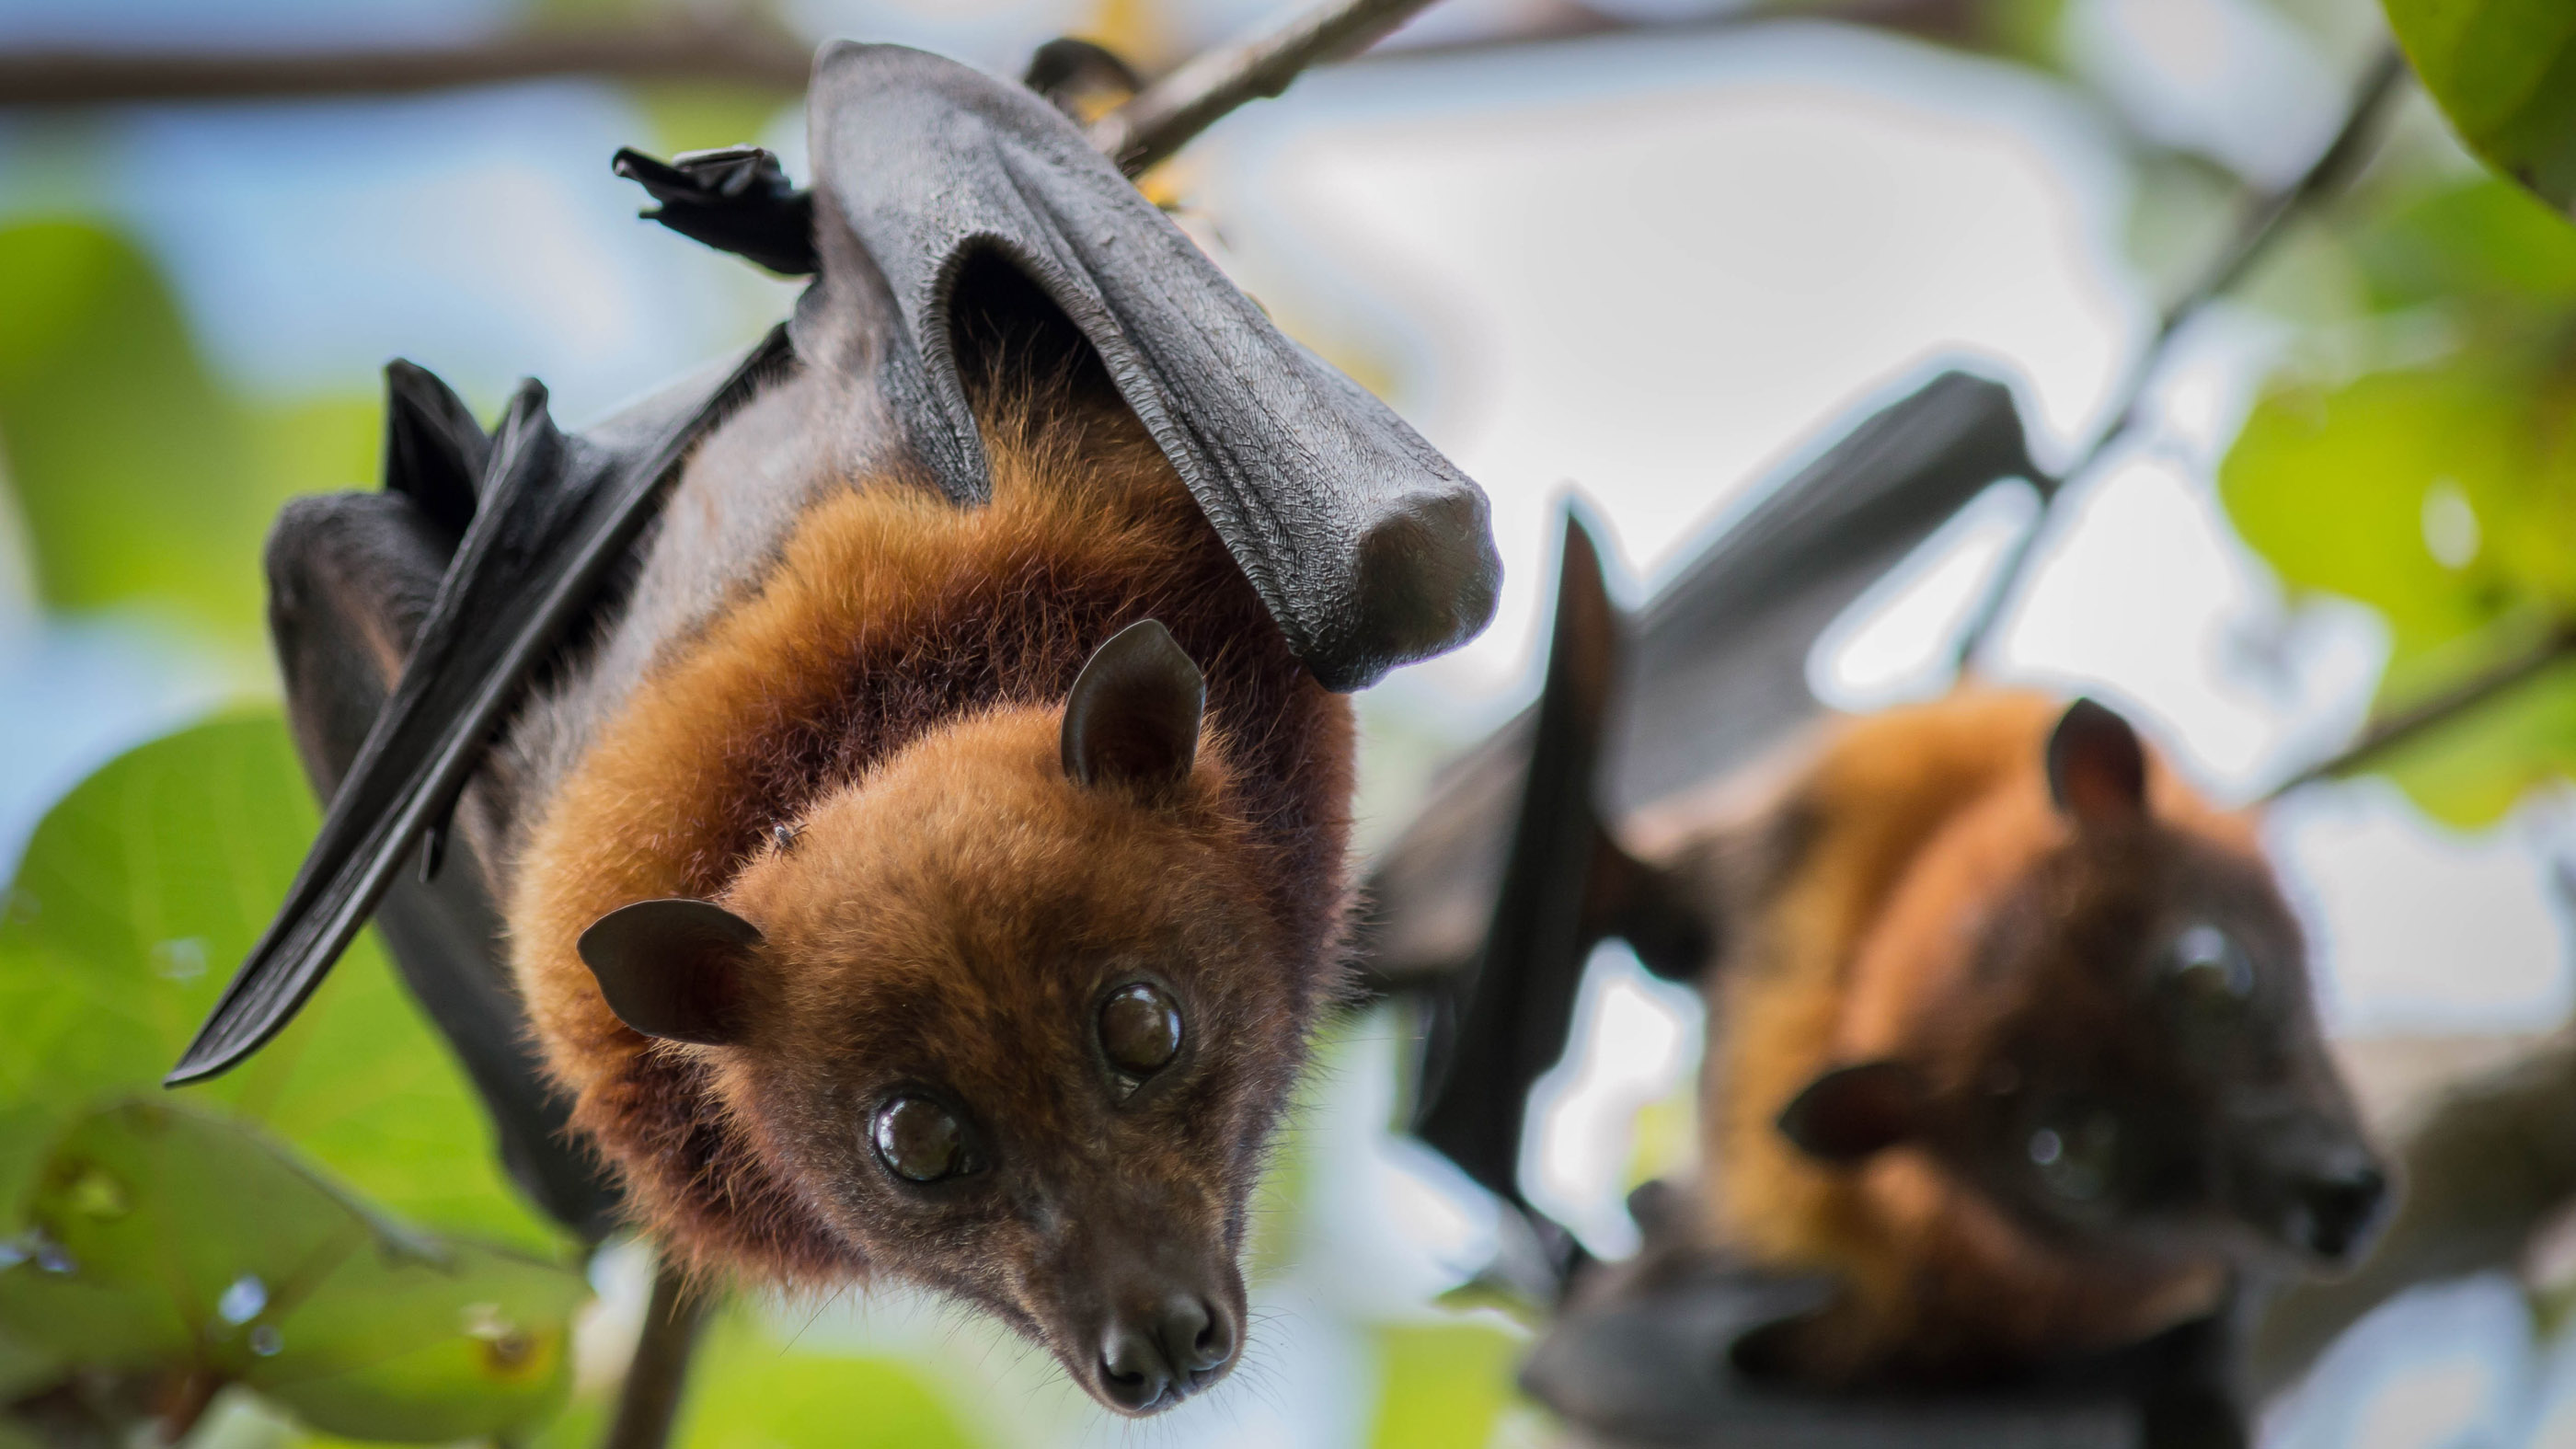 11 (sometimes) deadly diseases that hopped across species | Live ...